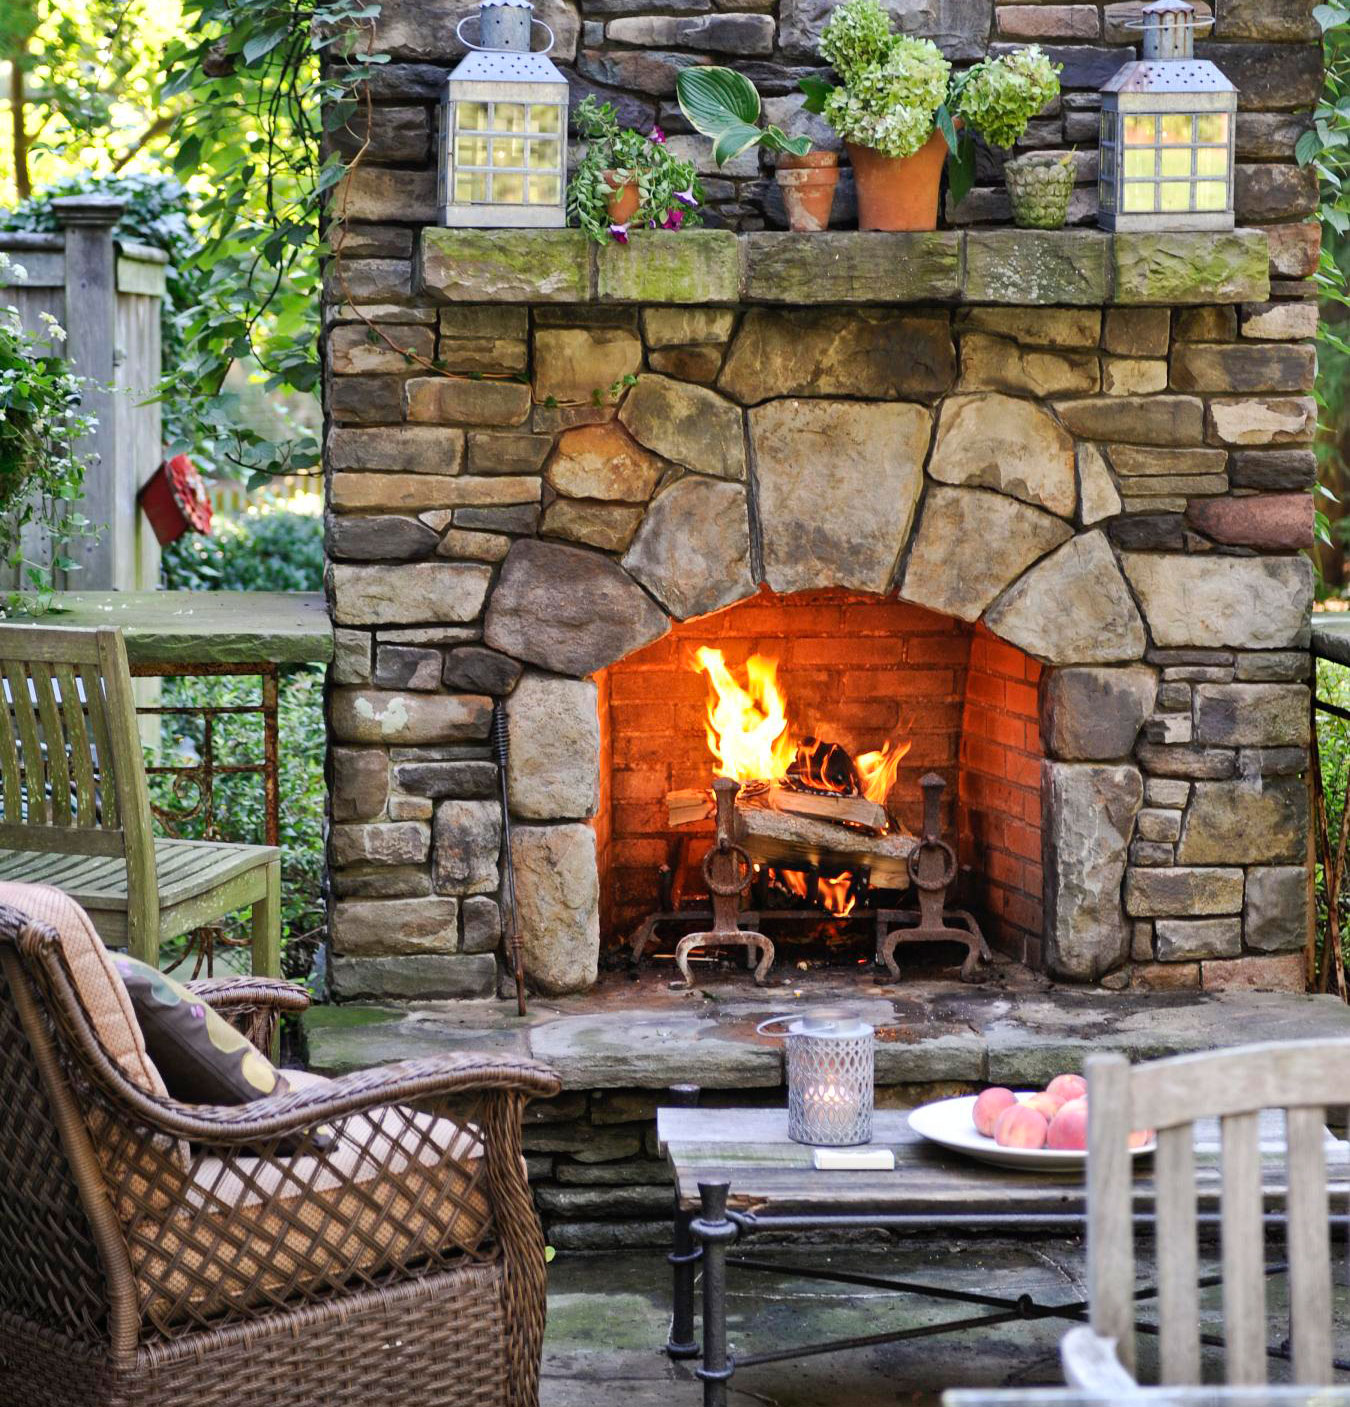 20 Outdoor Fireplace Ideas | Midwest Living on Outdoor Fireplaces Ideas  id=87968